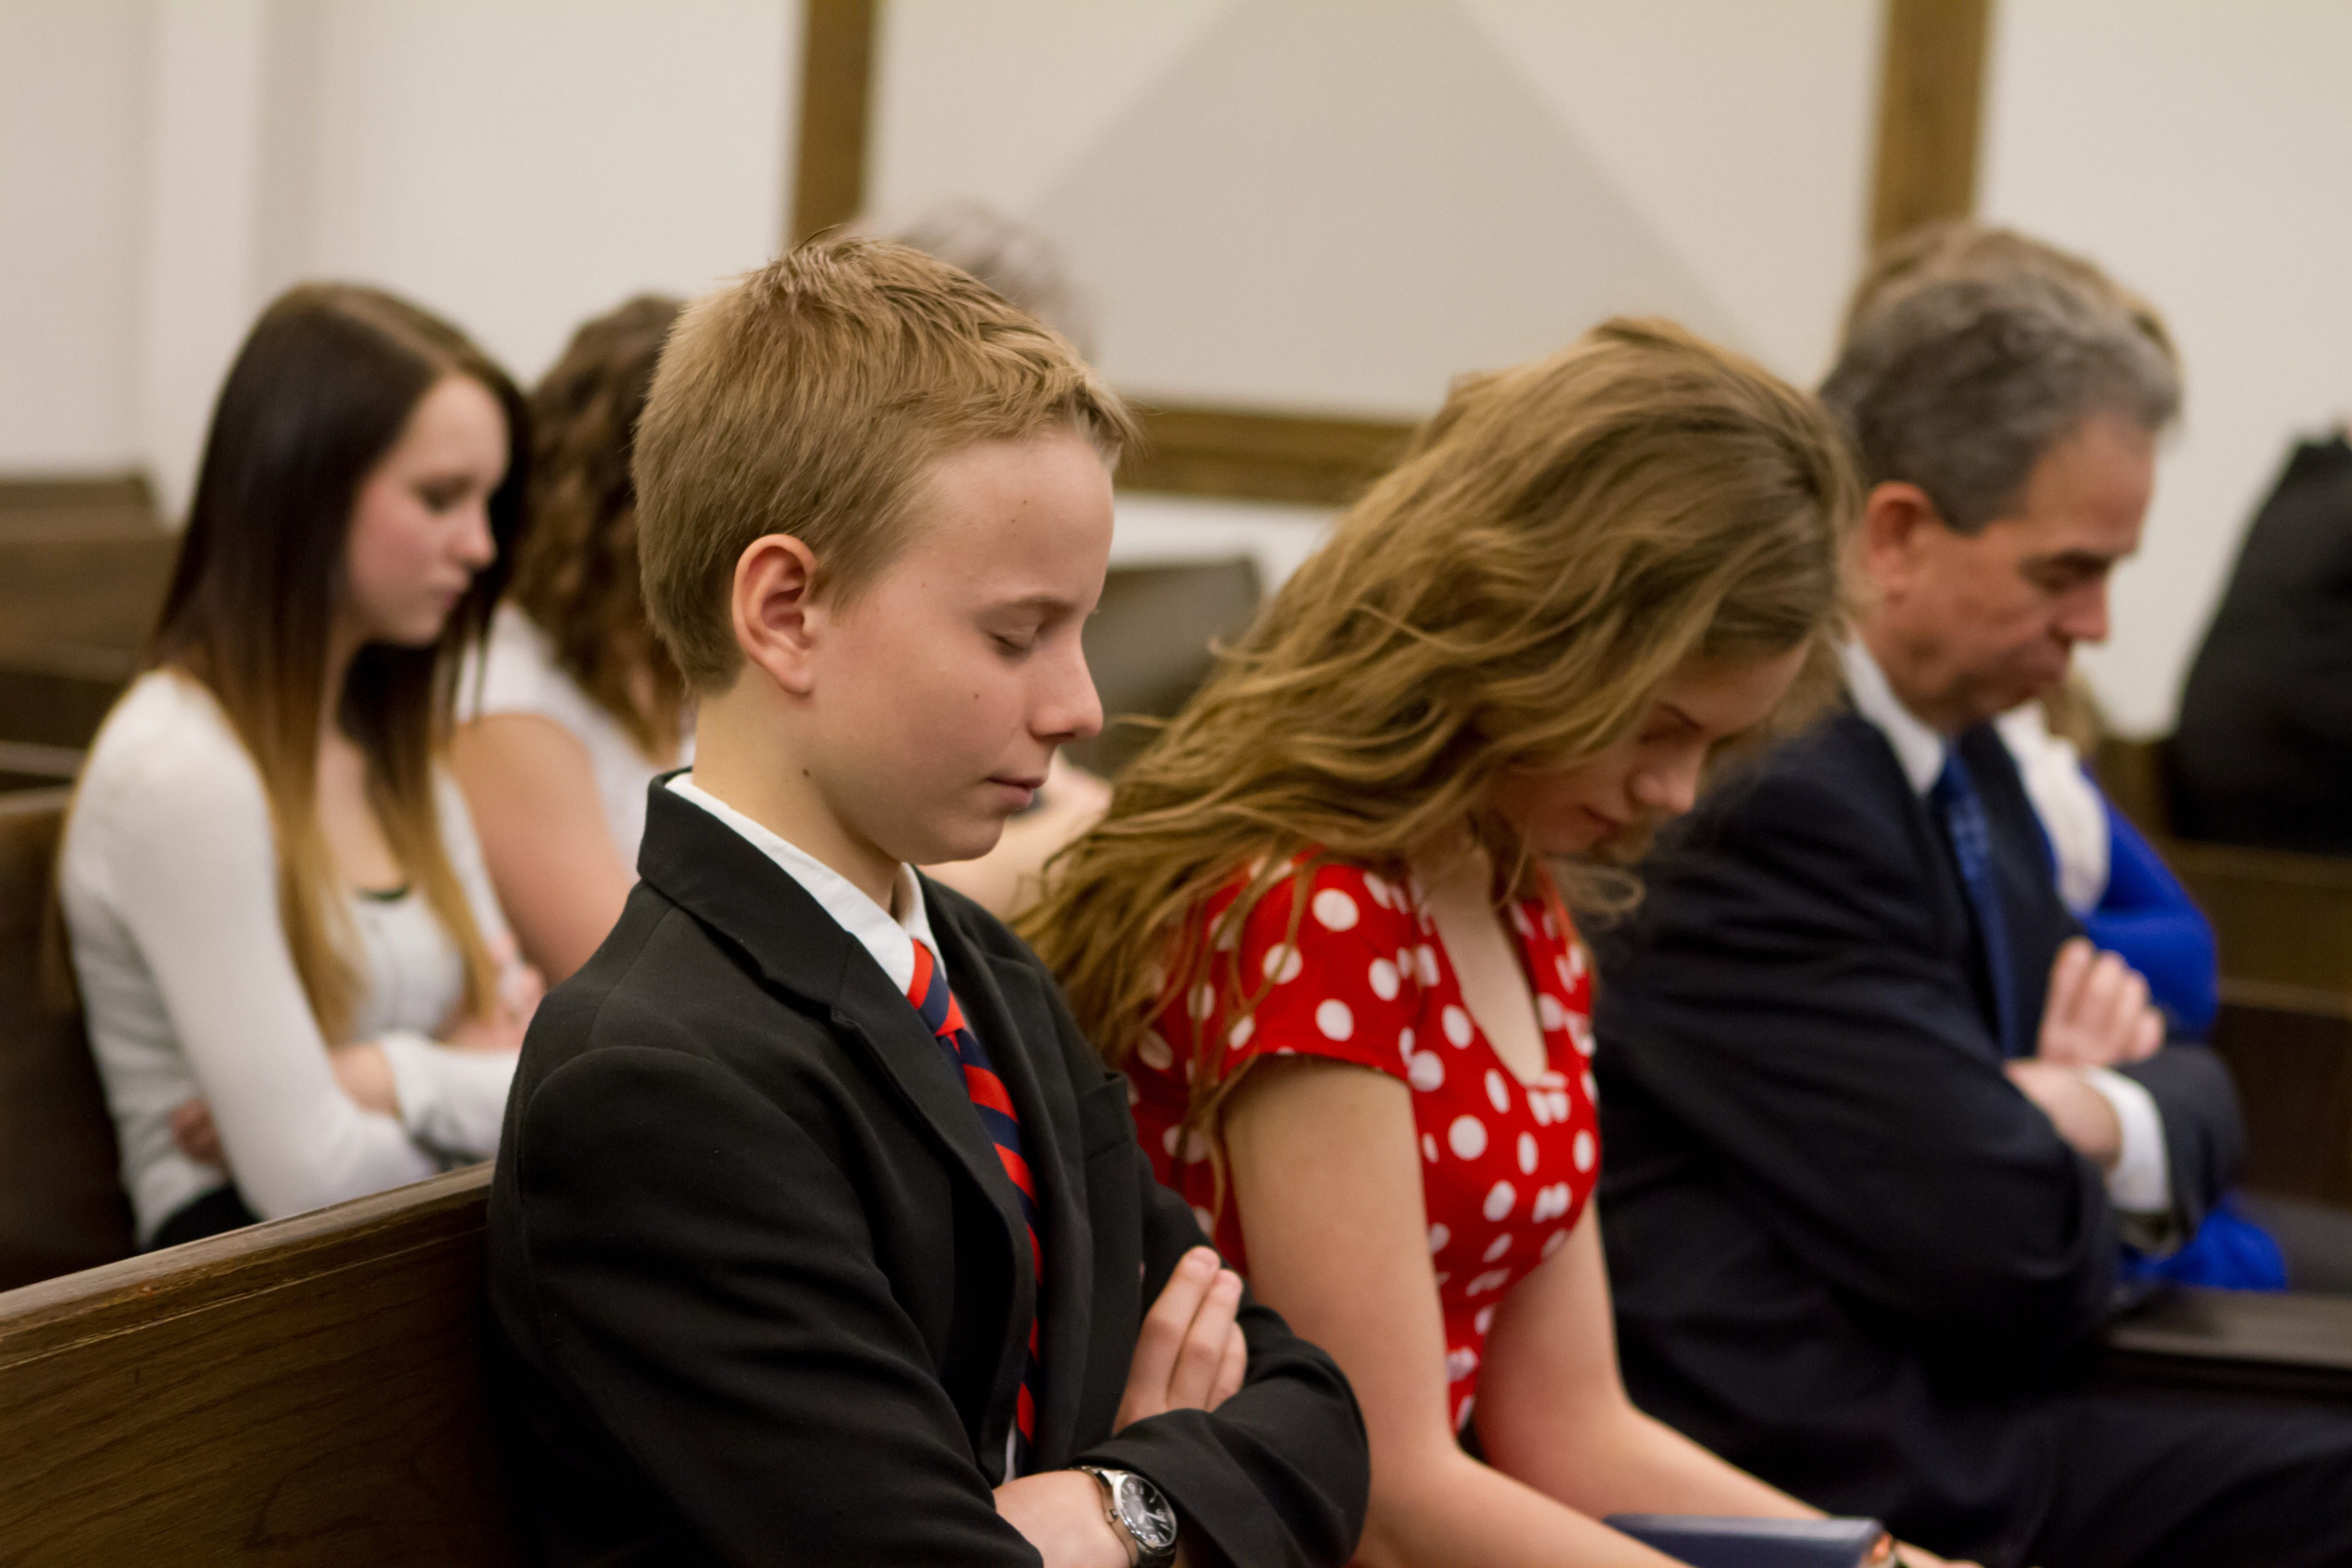 A family bow their heads during prayer in sacrament meeting.